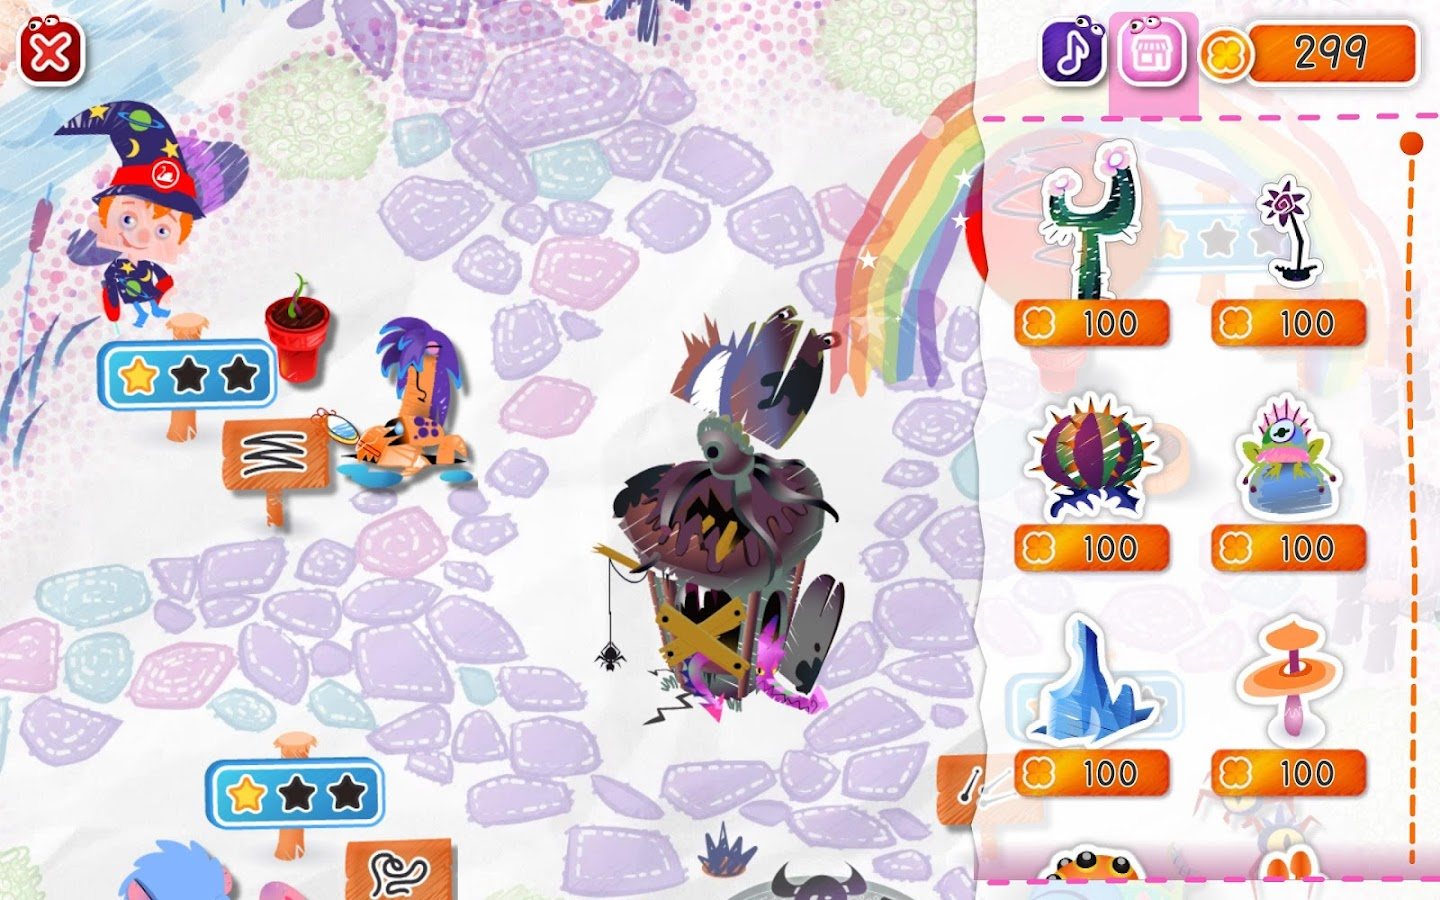 STABILO -  Monster Zoo- screenshot